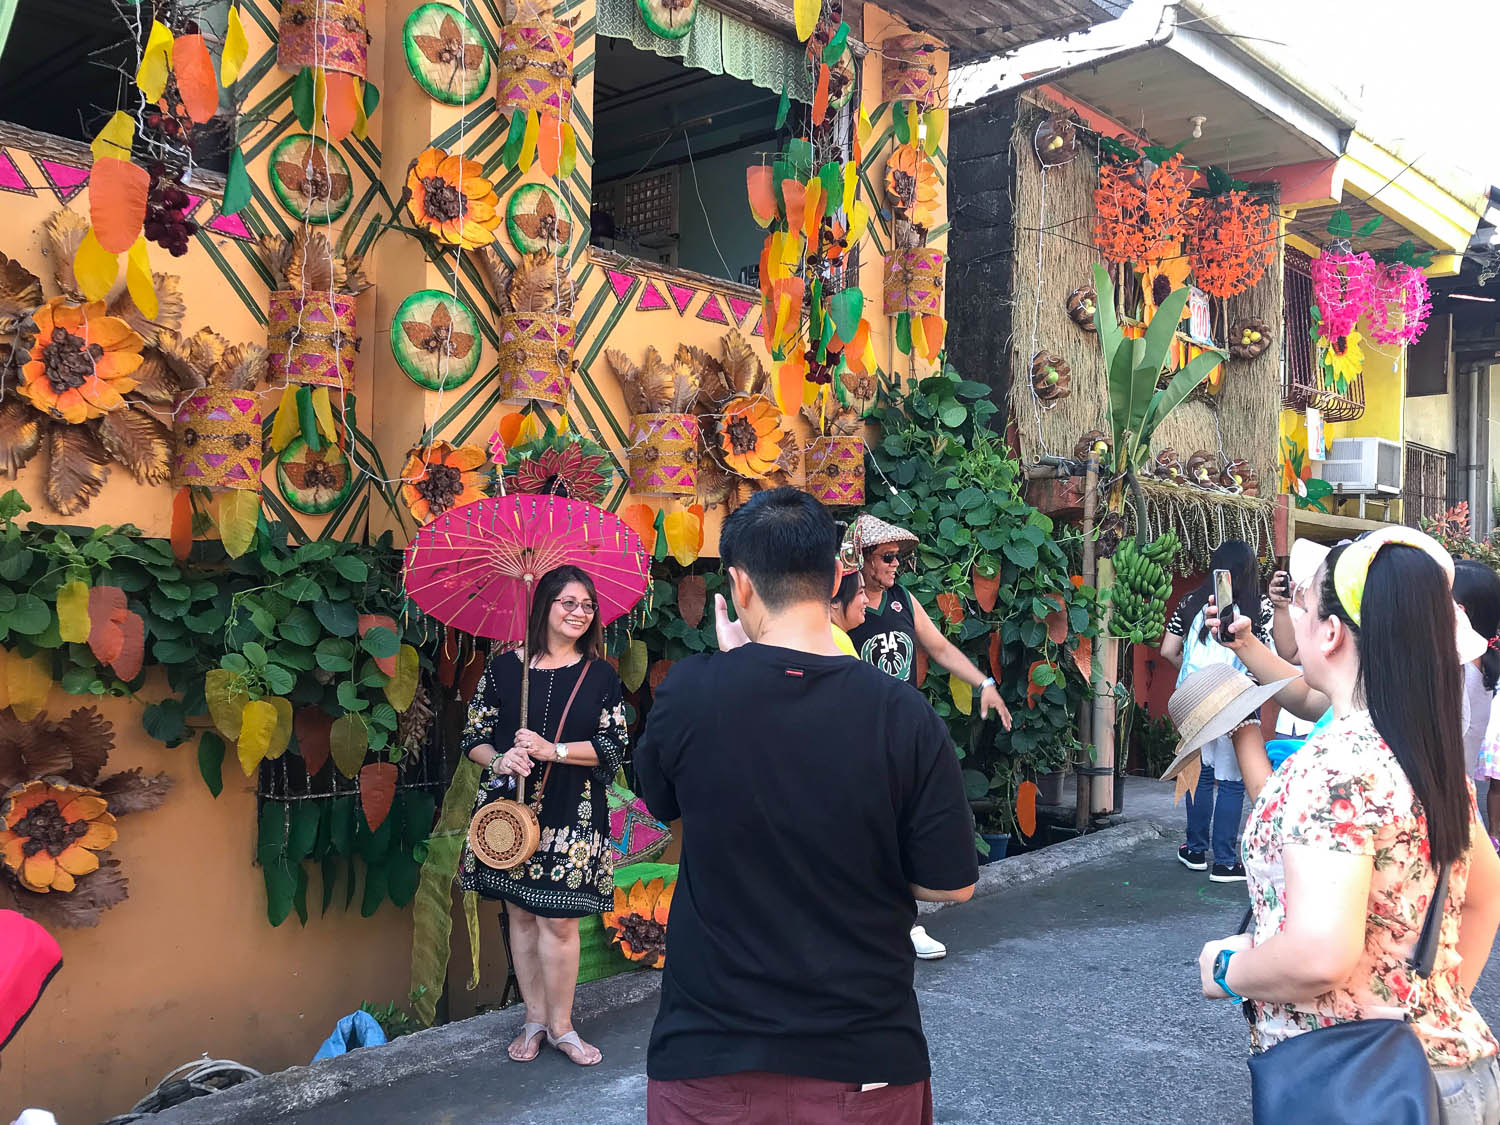 Tourists snap photos along the decorated streets. Image: © David Astley